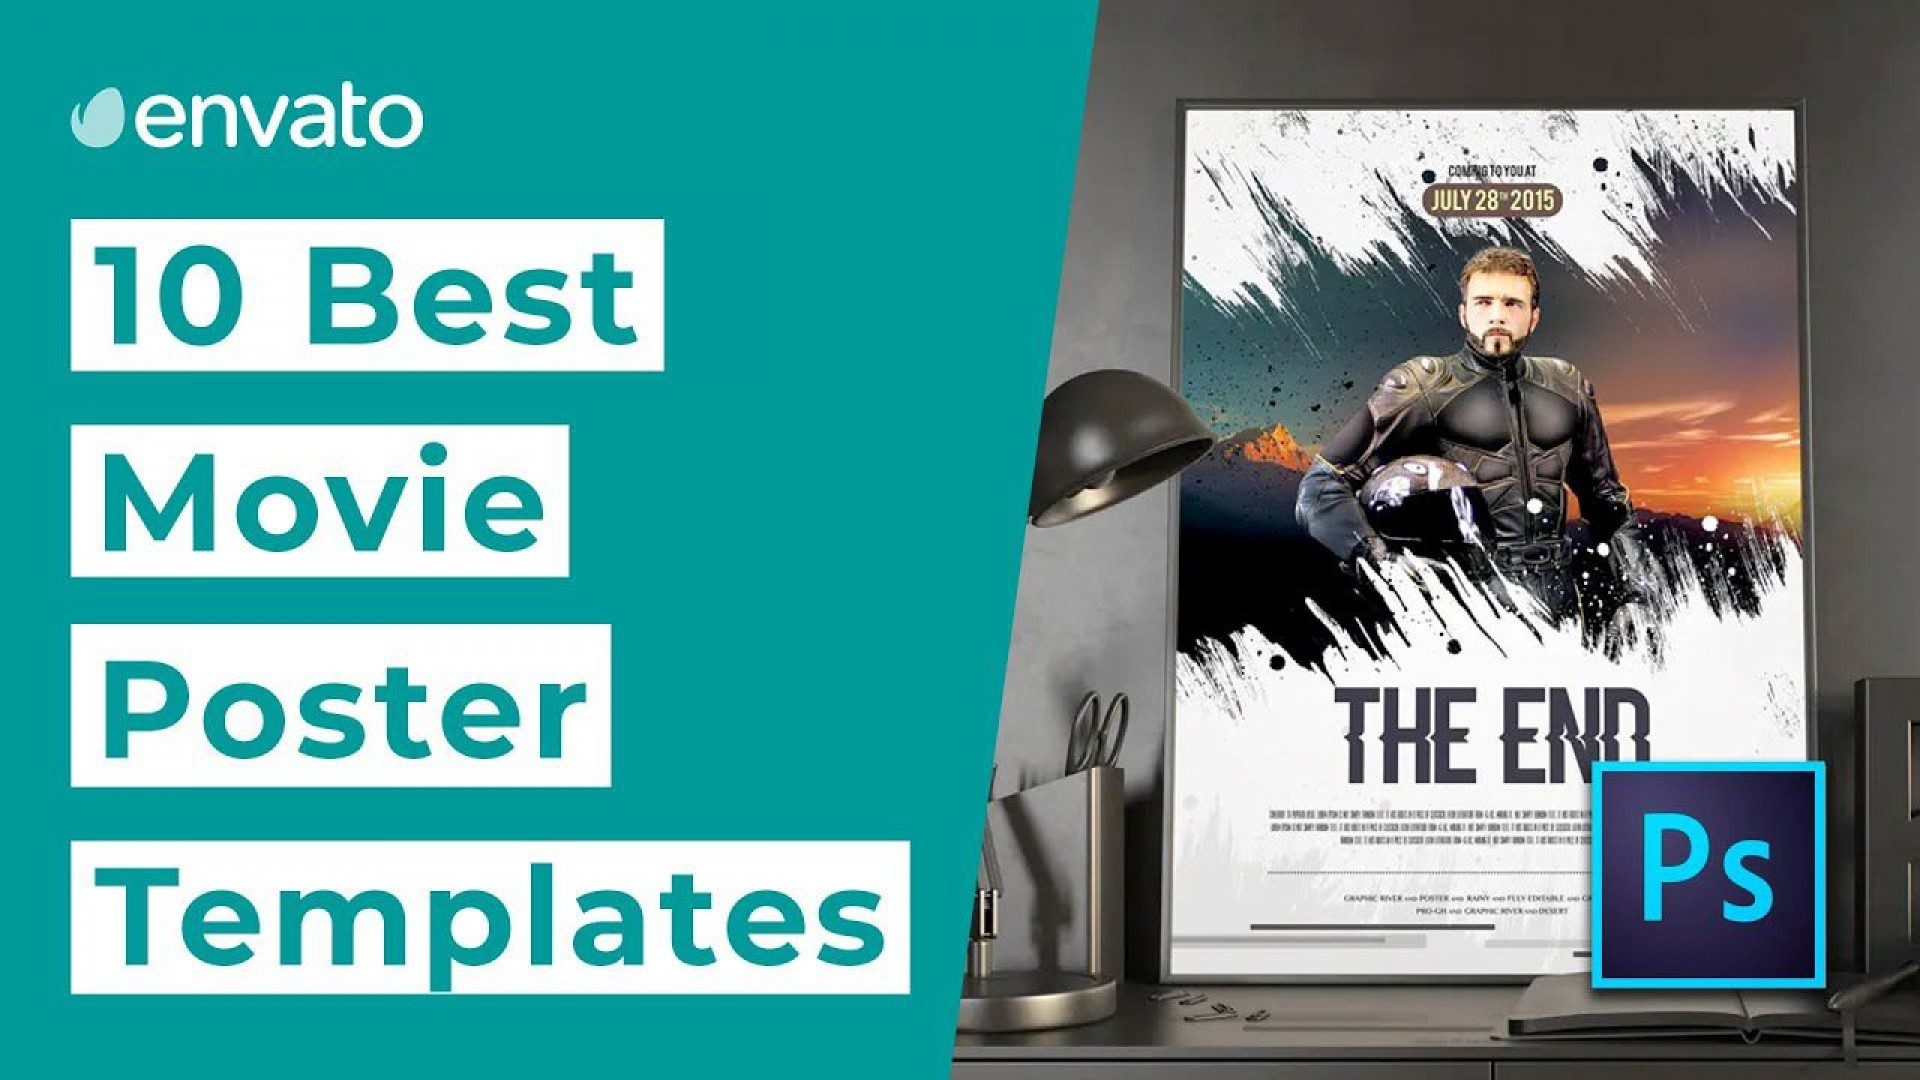 005 Top Free Photoshop Movie Poster Template Example  Templates1920